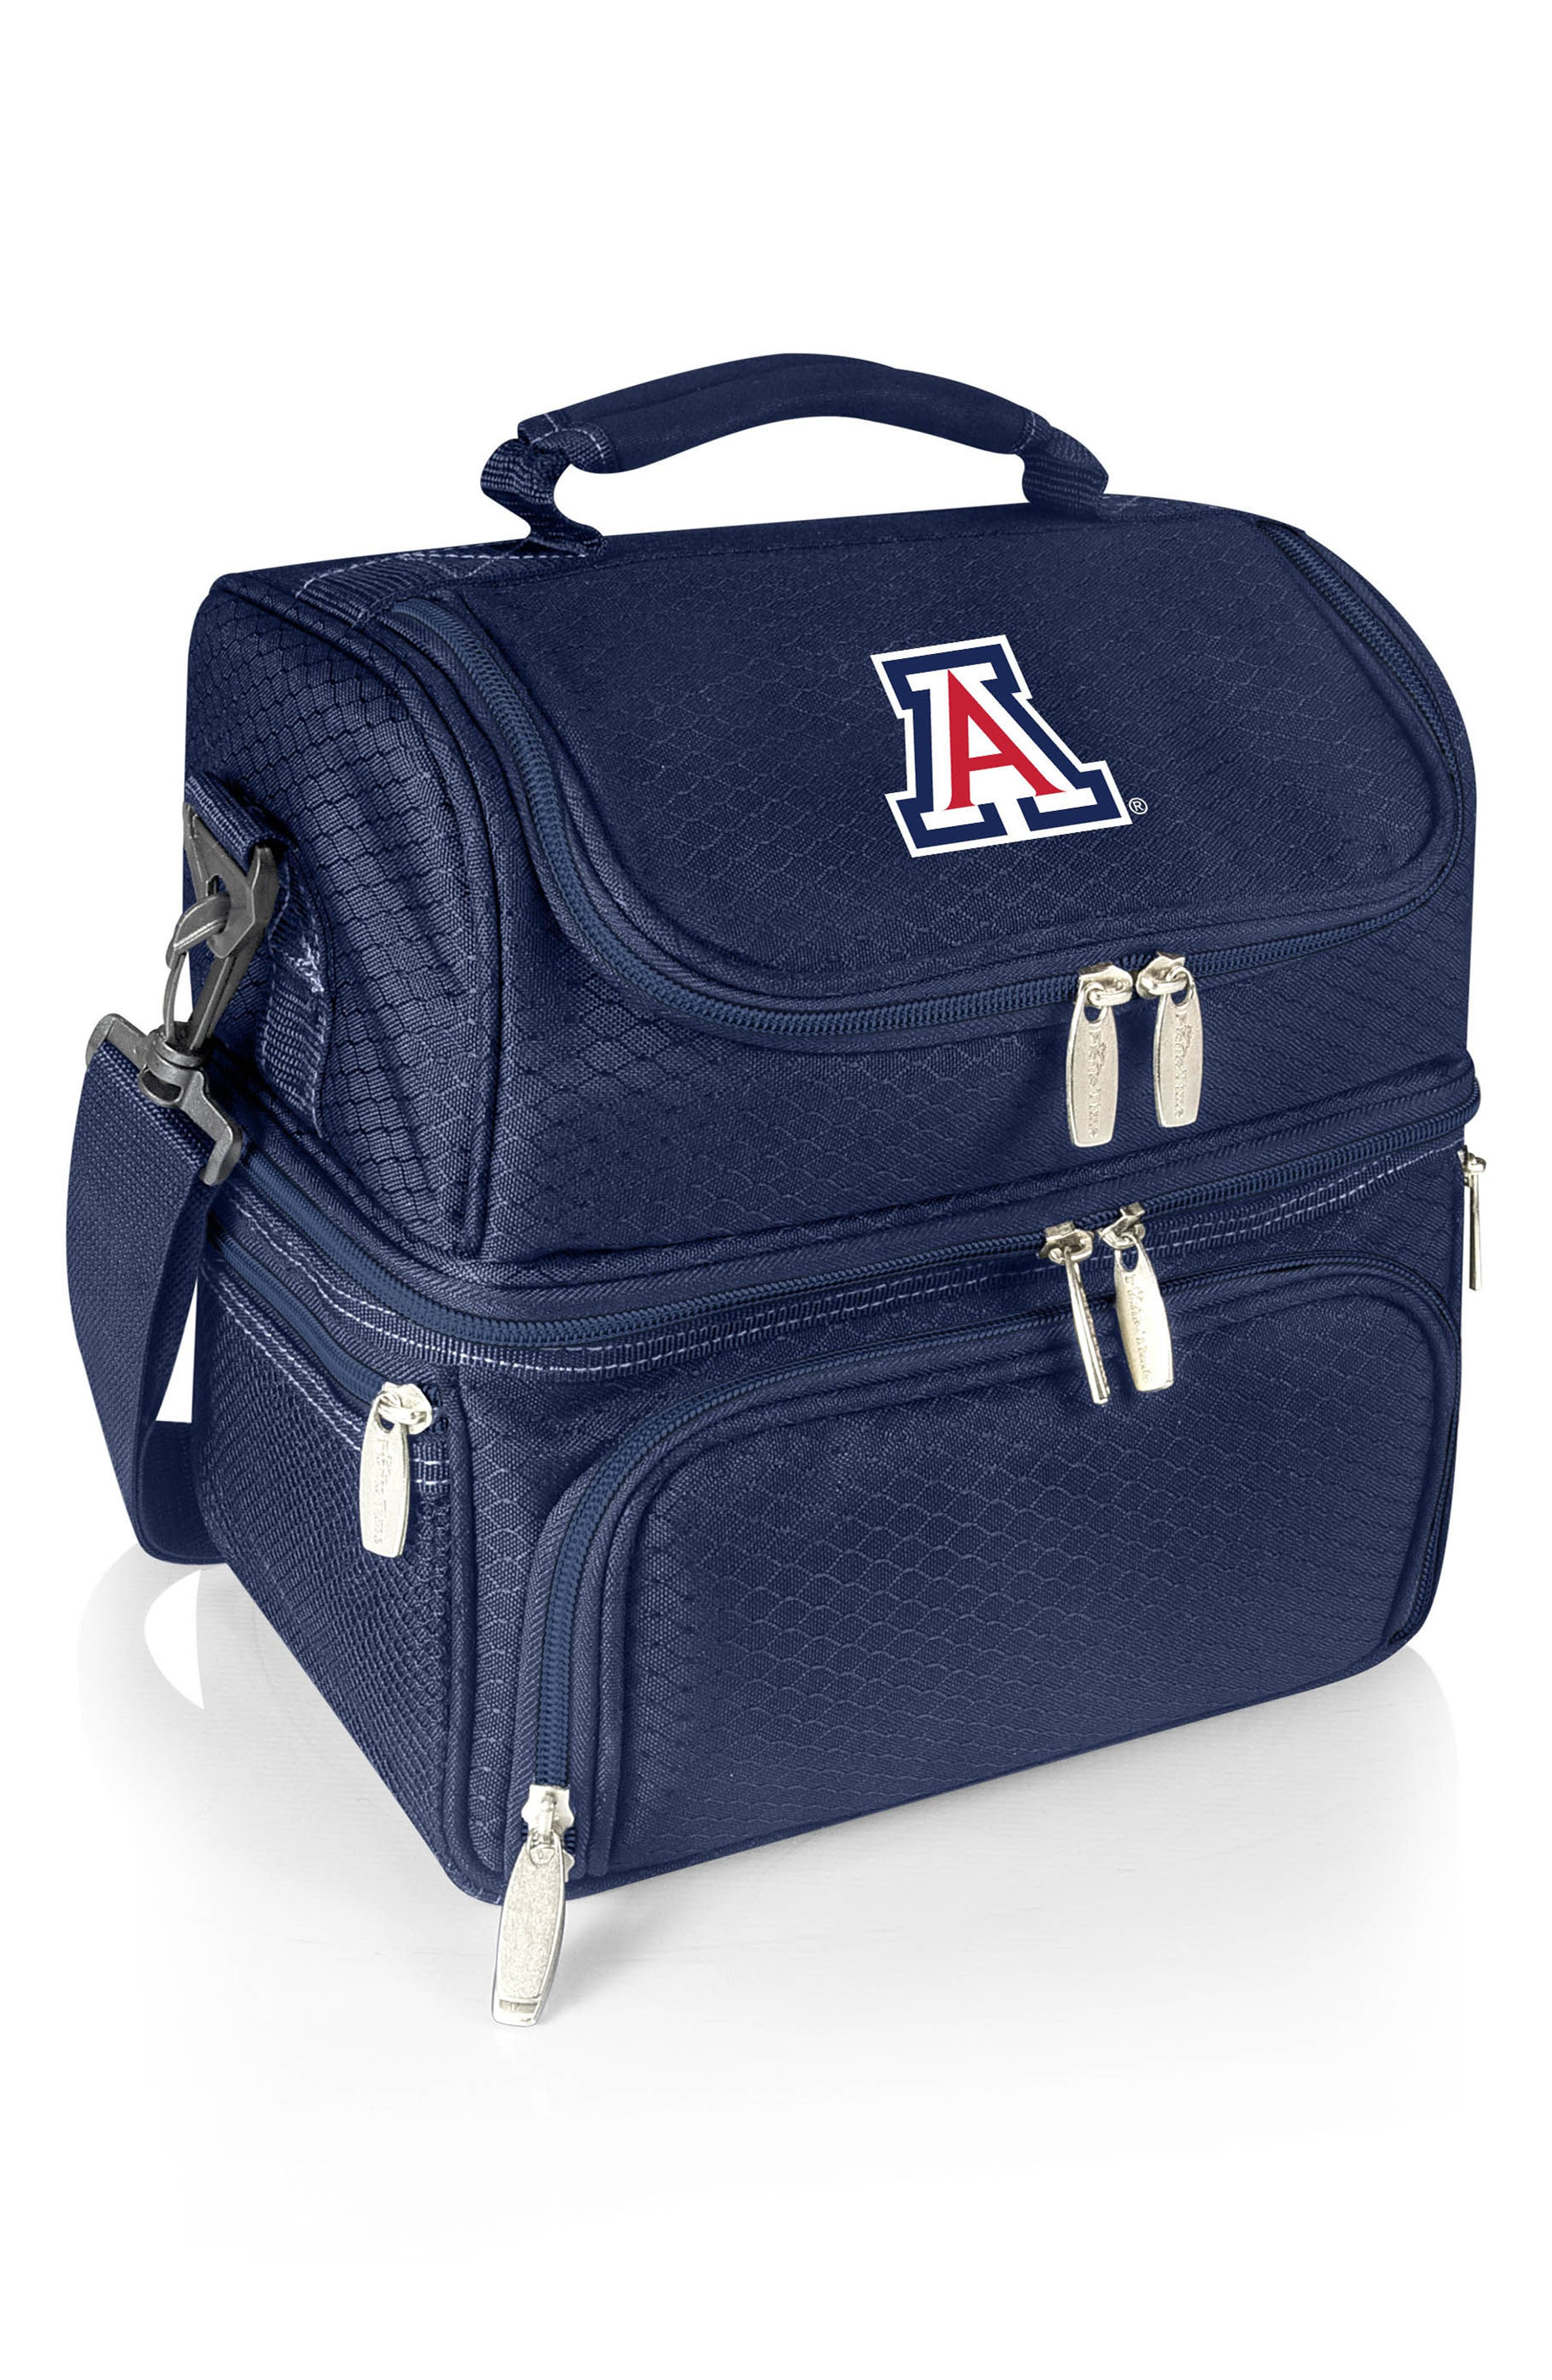 Navy Pranzo College Team Logo Lunch Tote,                             Main thumbnail 1, color,                             400